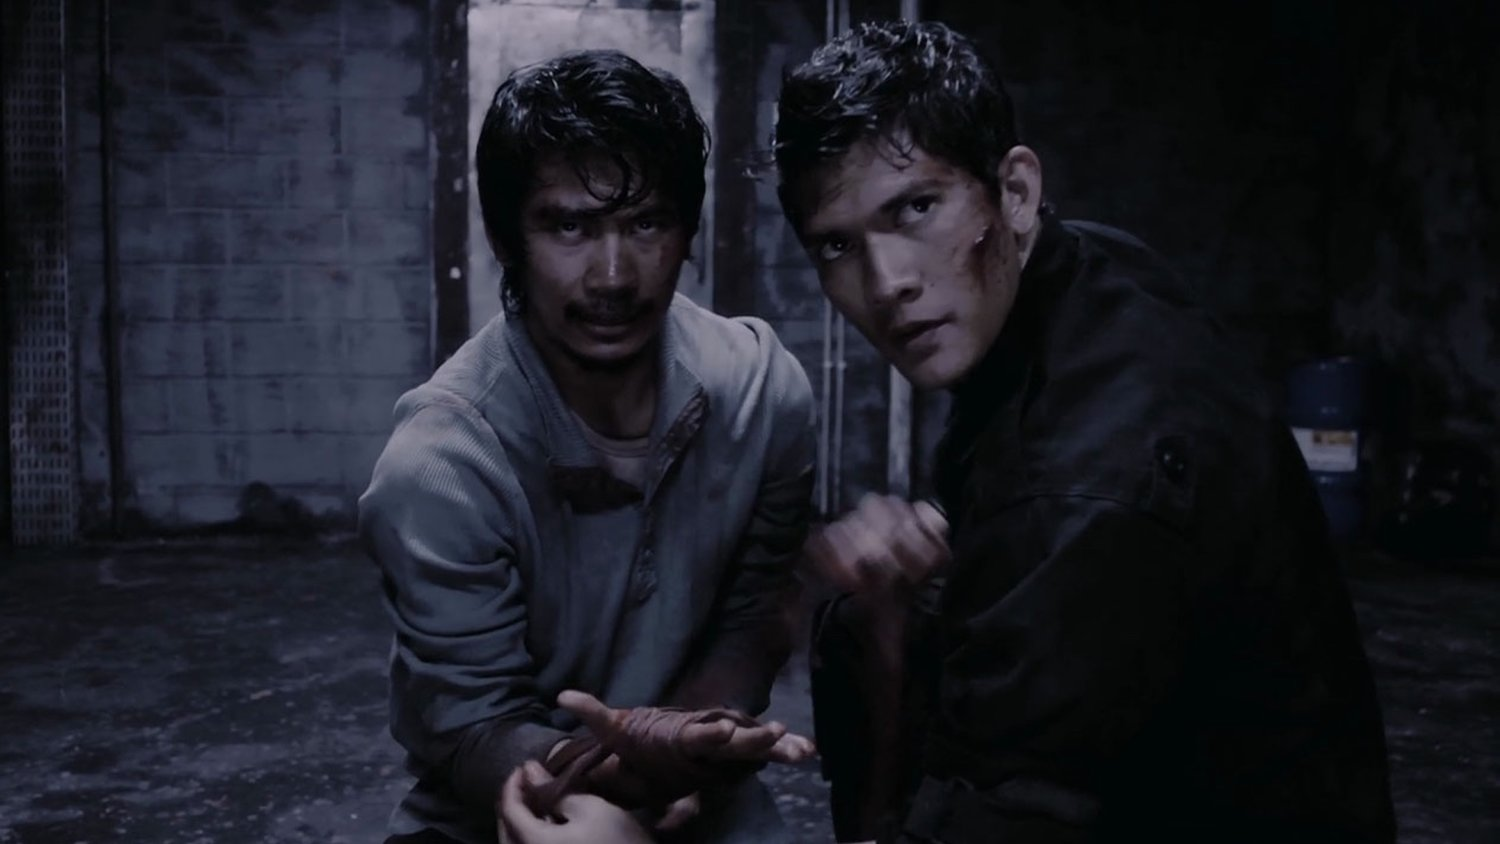 THE RAID Remake Moves Forward with Director Joe Carnahan and Frank Grillo